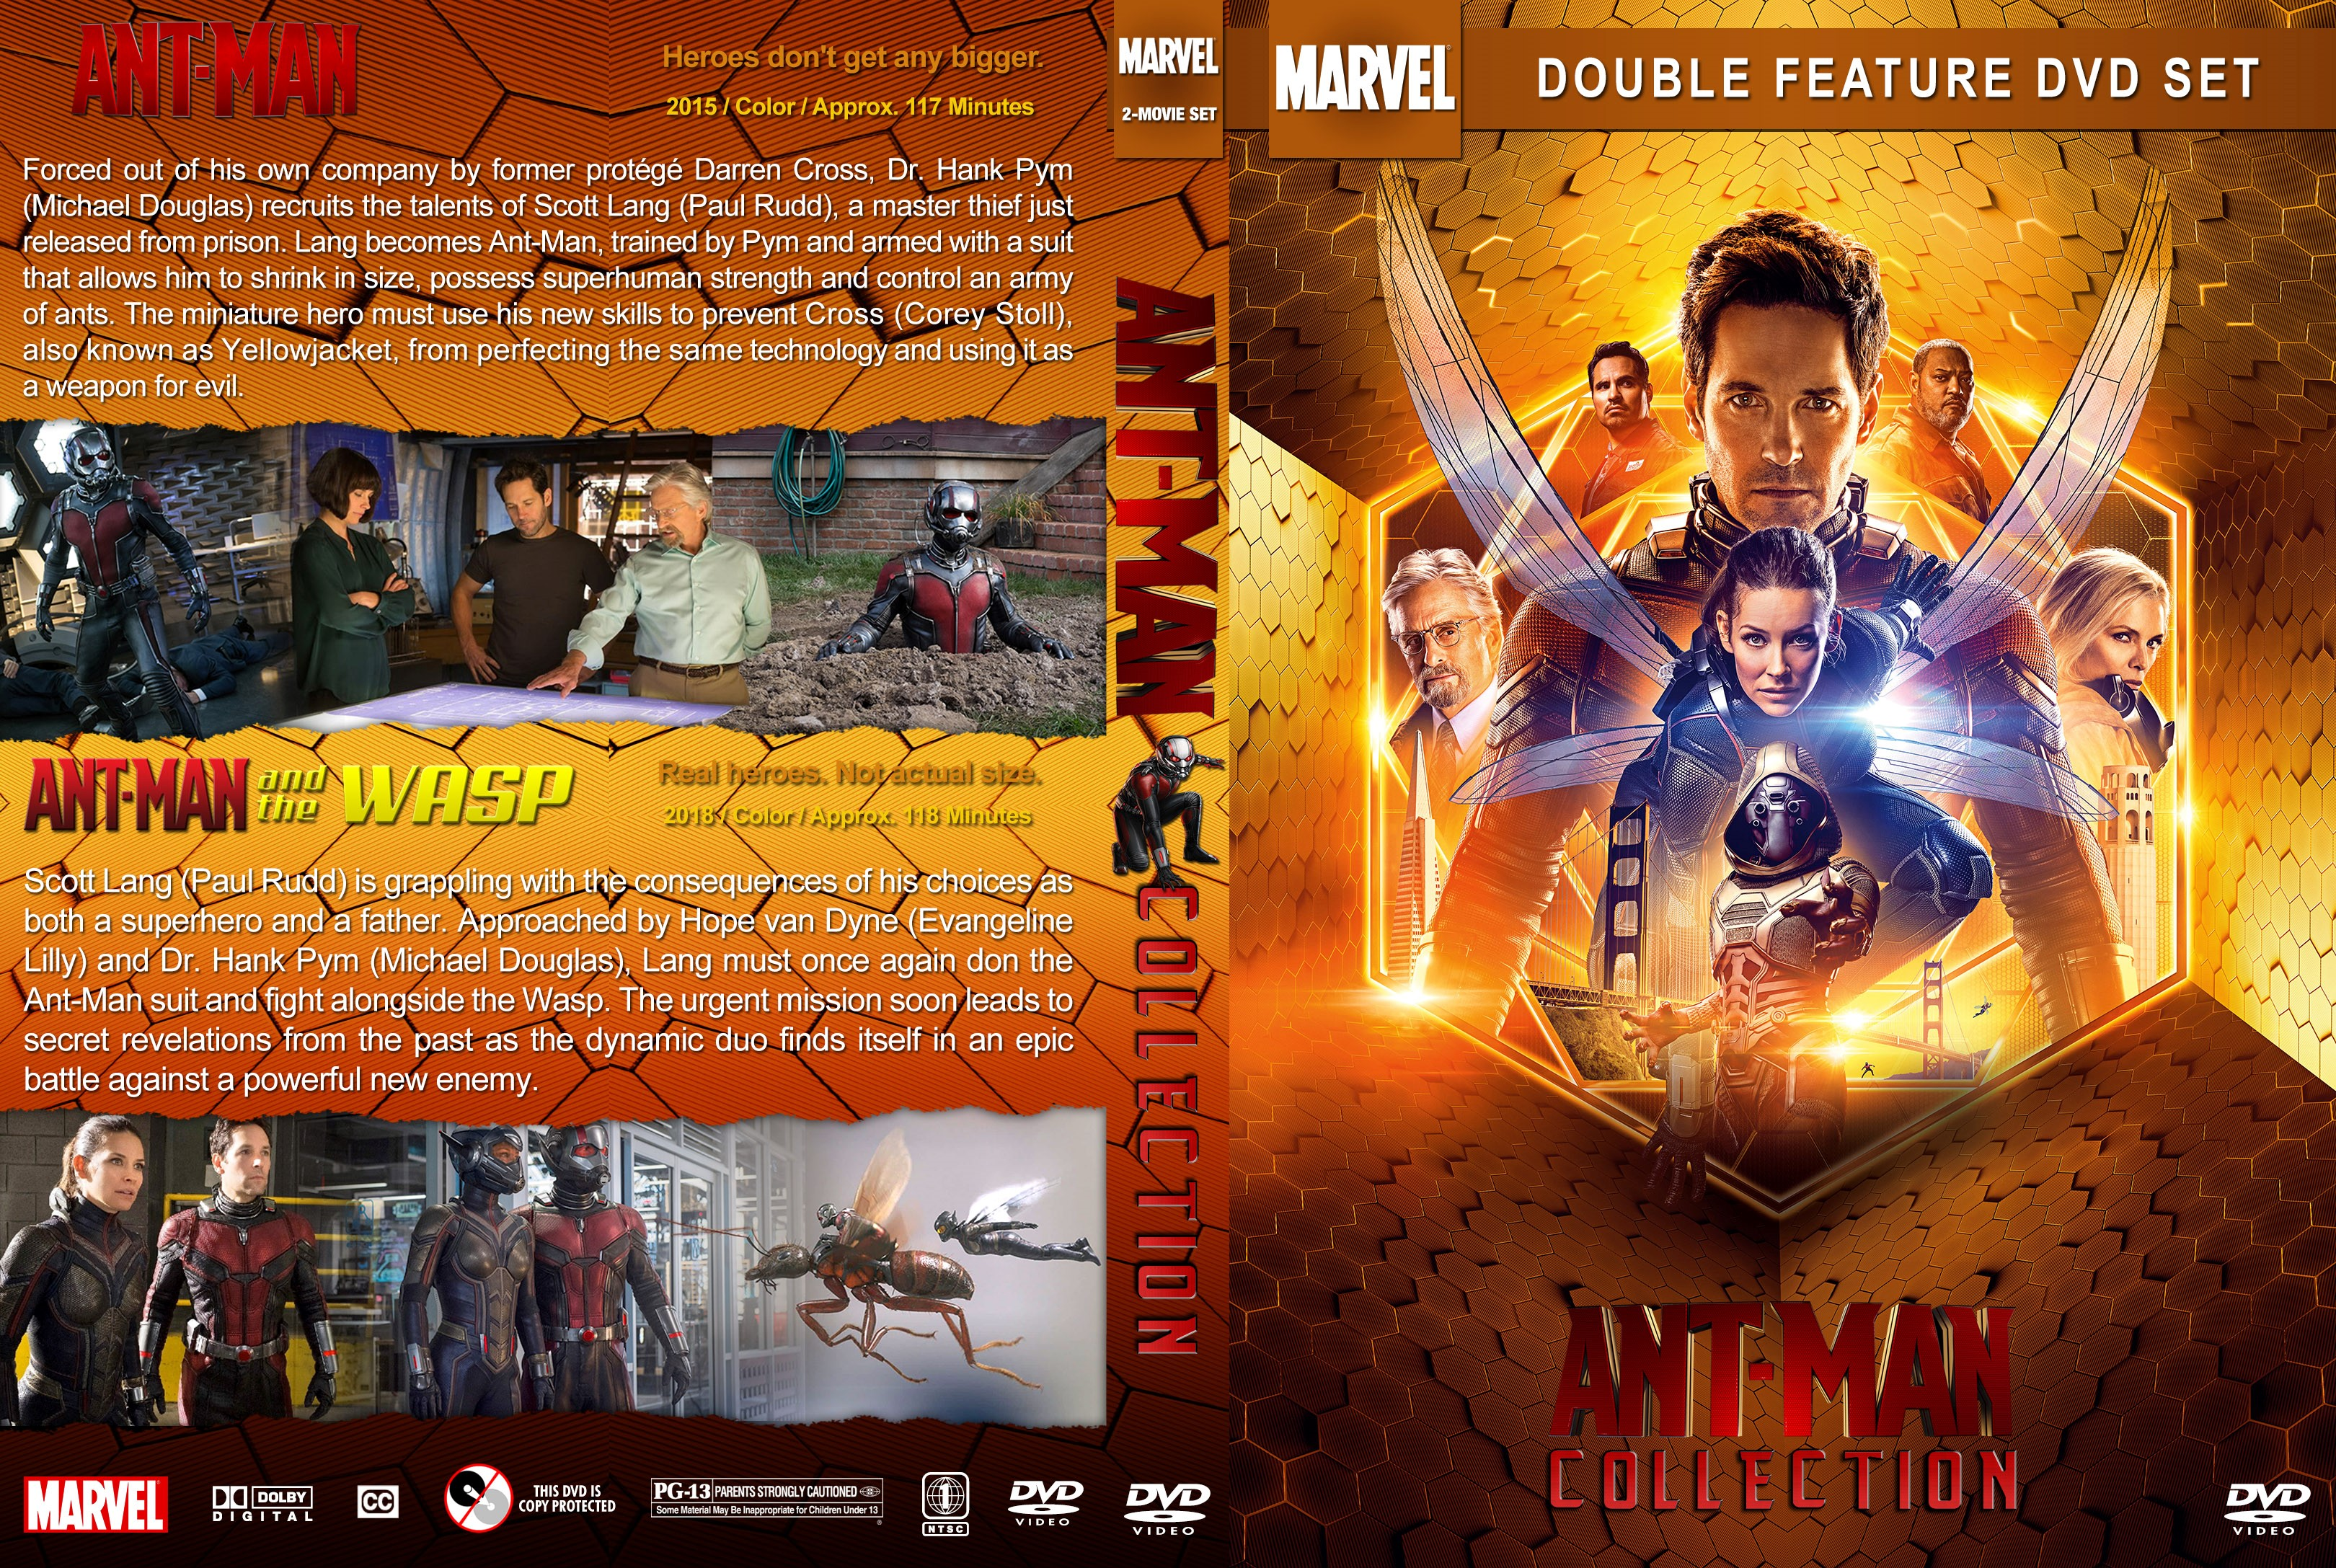 Ant-Man Collection DVD Cover   Cover Addict - Free DVD